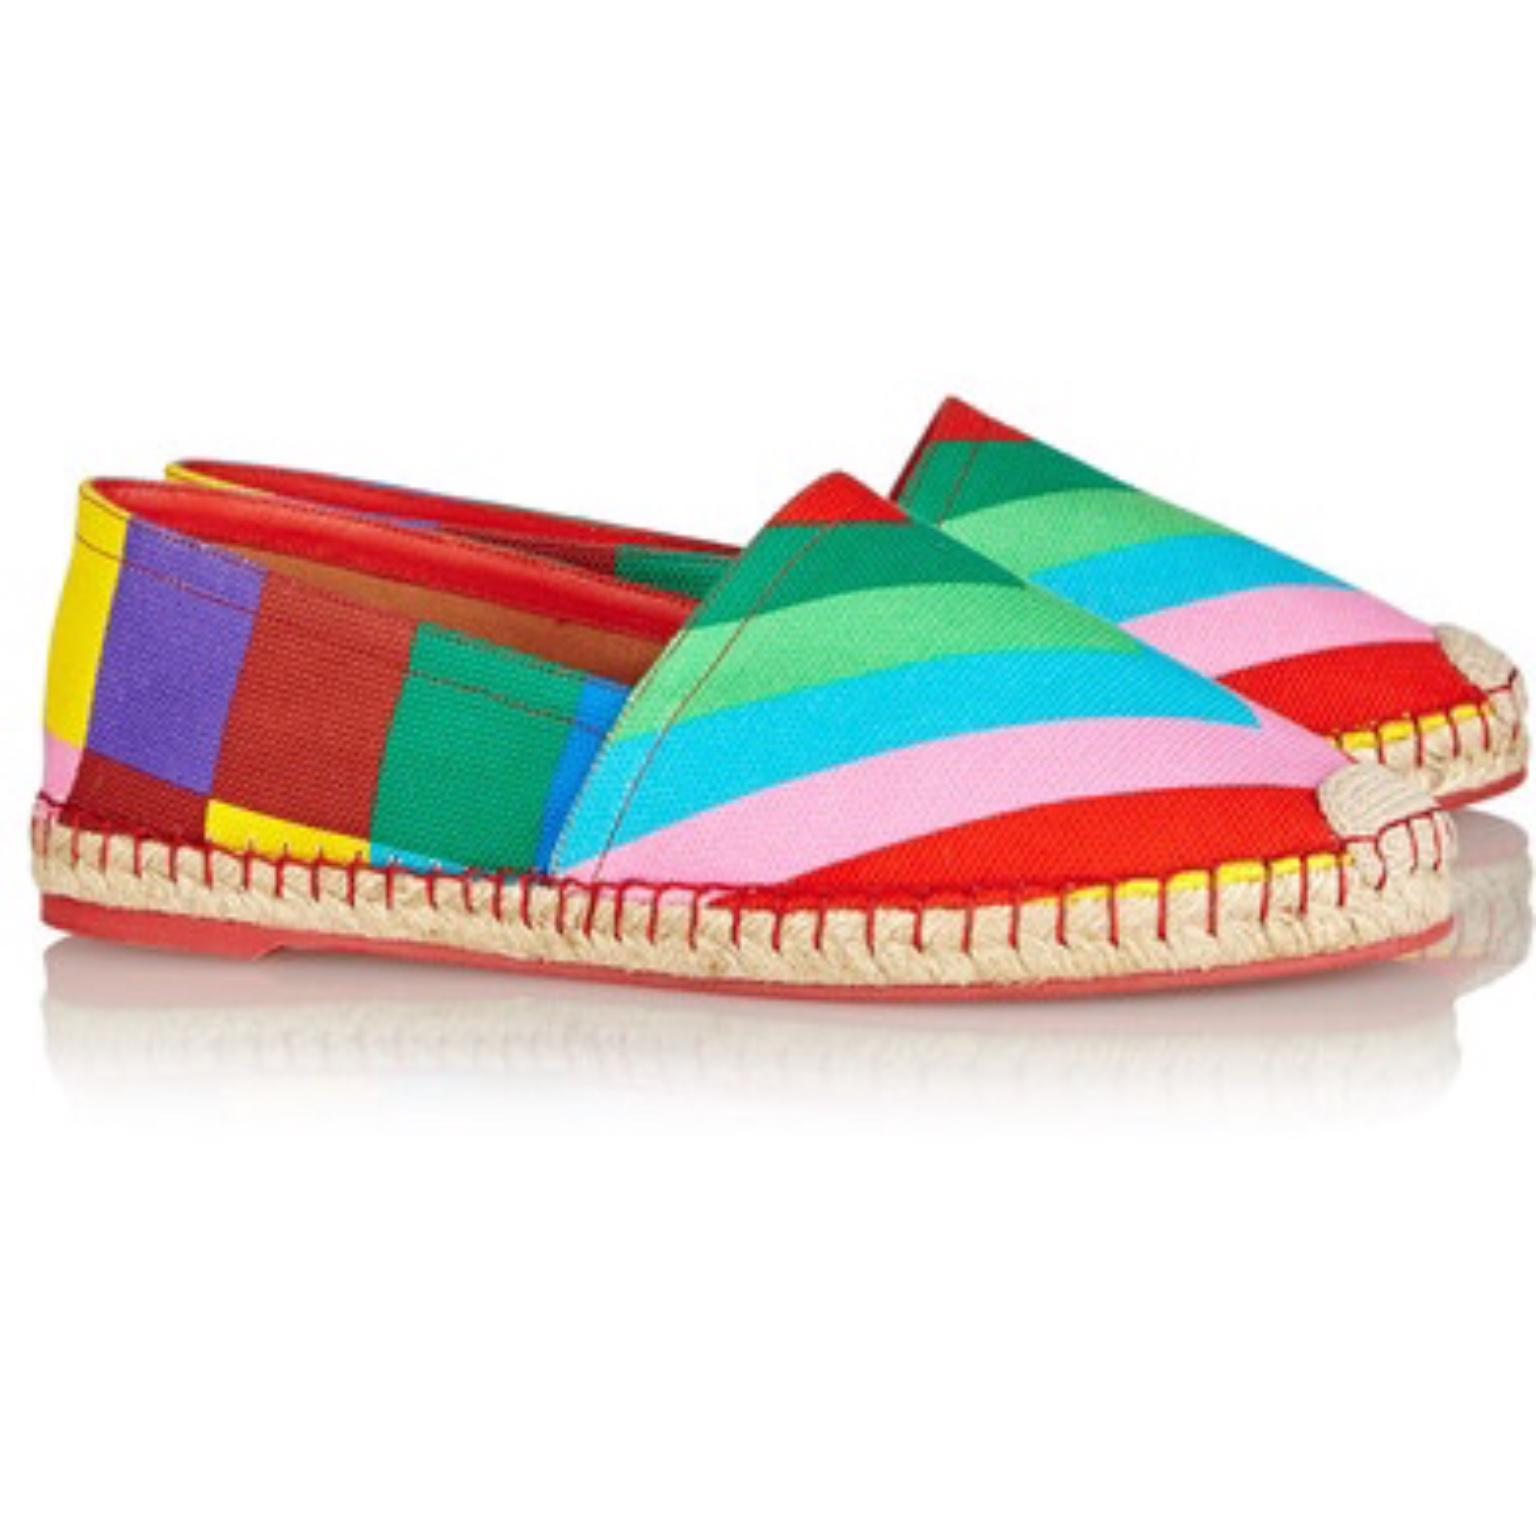 Valentino 1973 Canvas Espadrilles clearance pay with visa shop offer cheap online 100% original for sale D9bvpOV